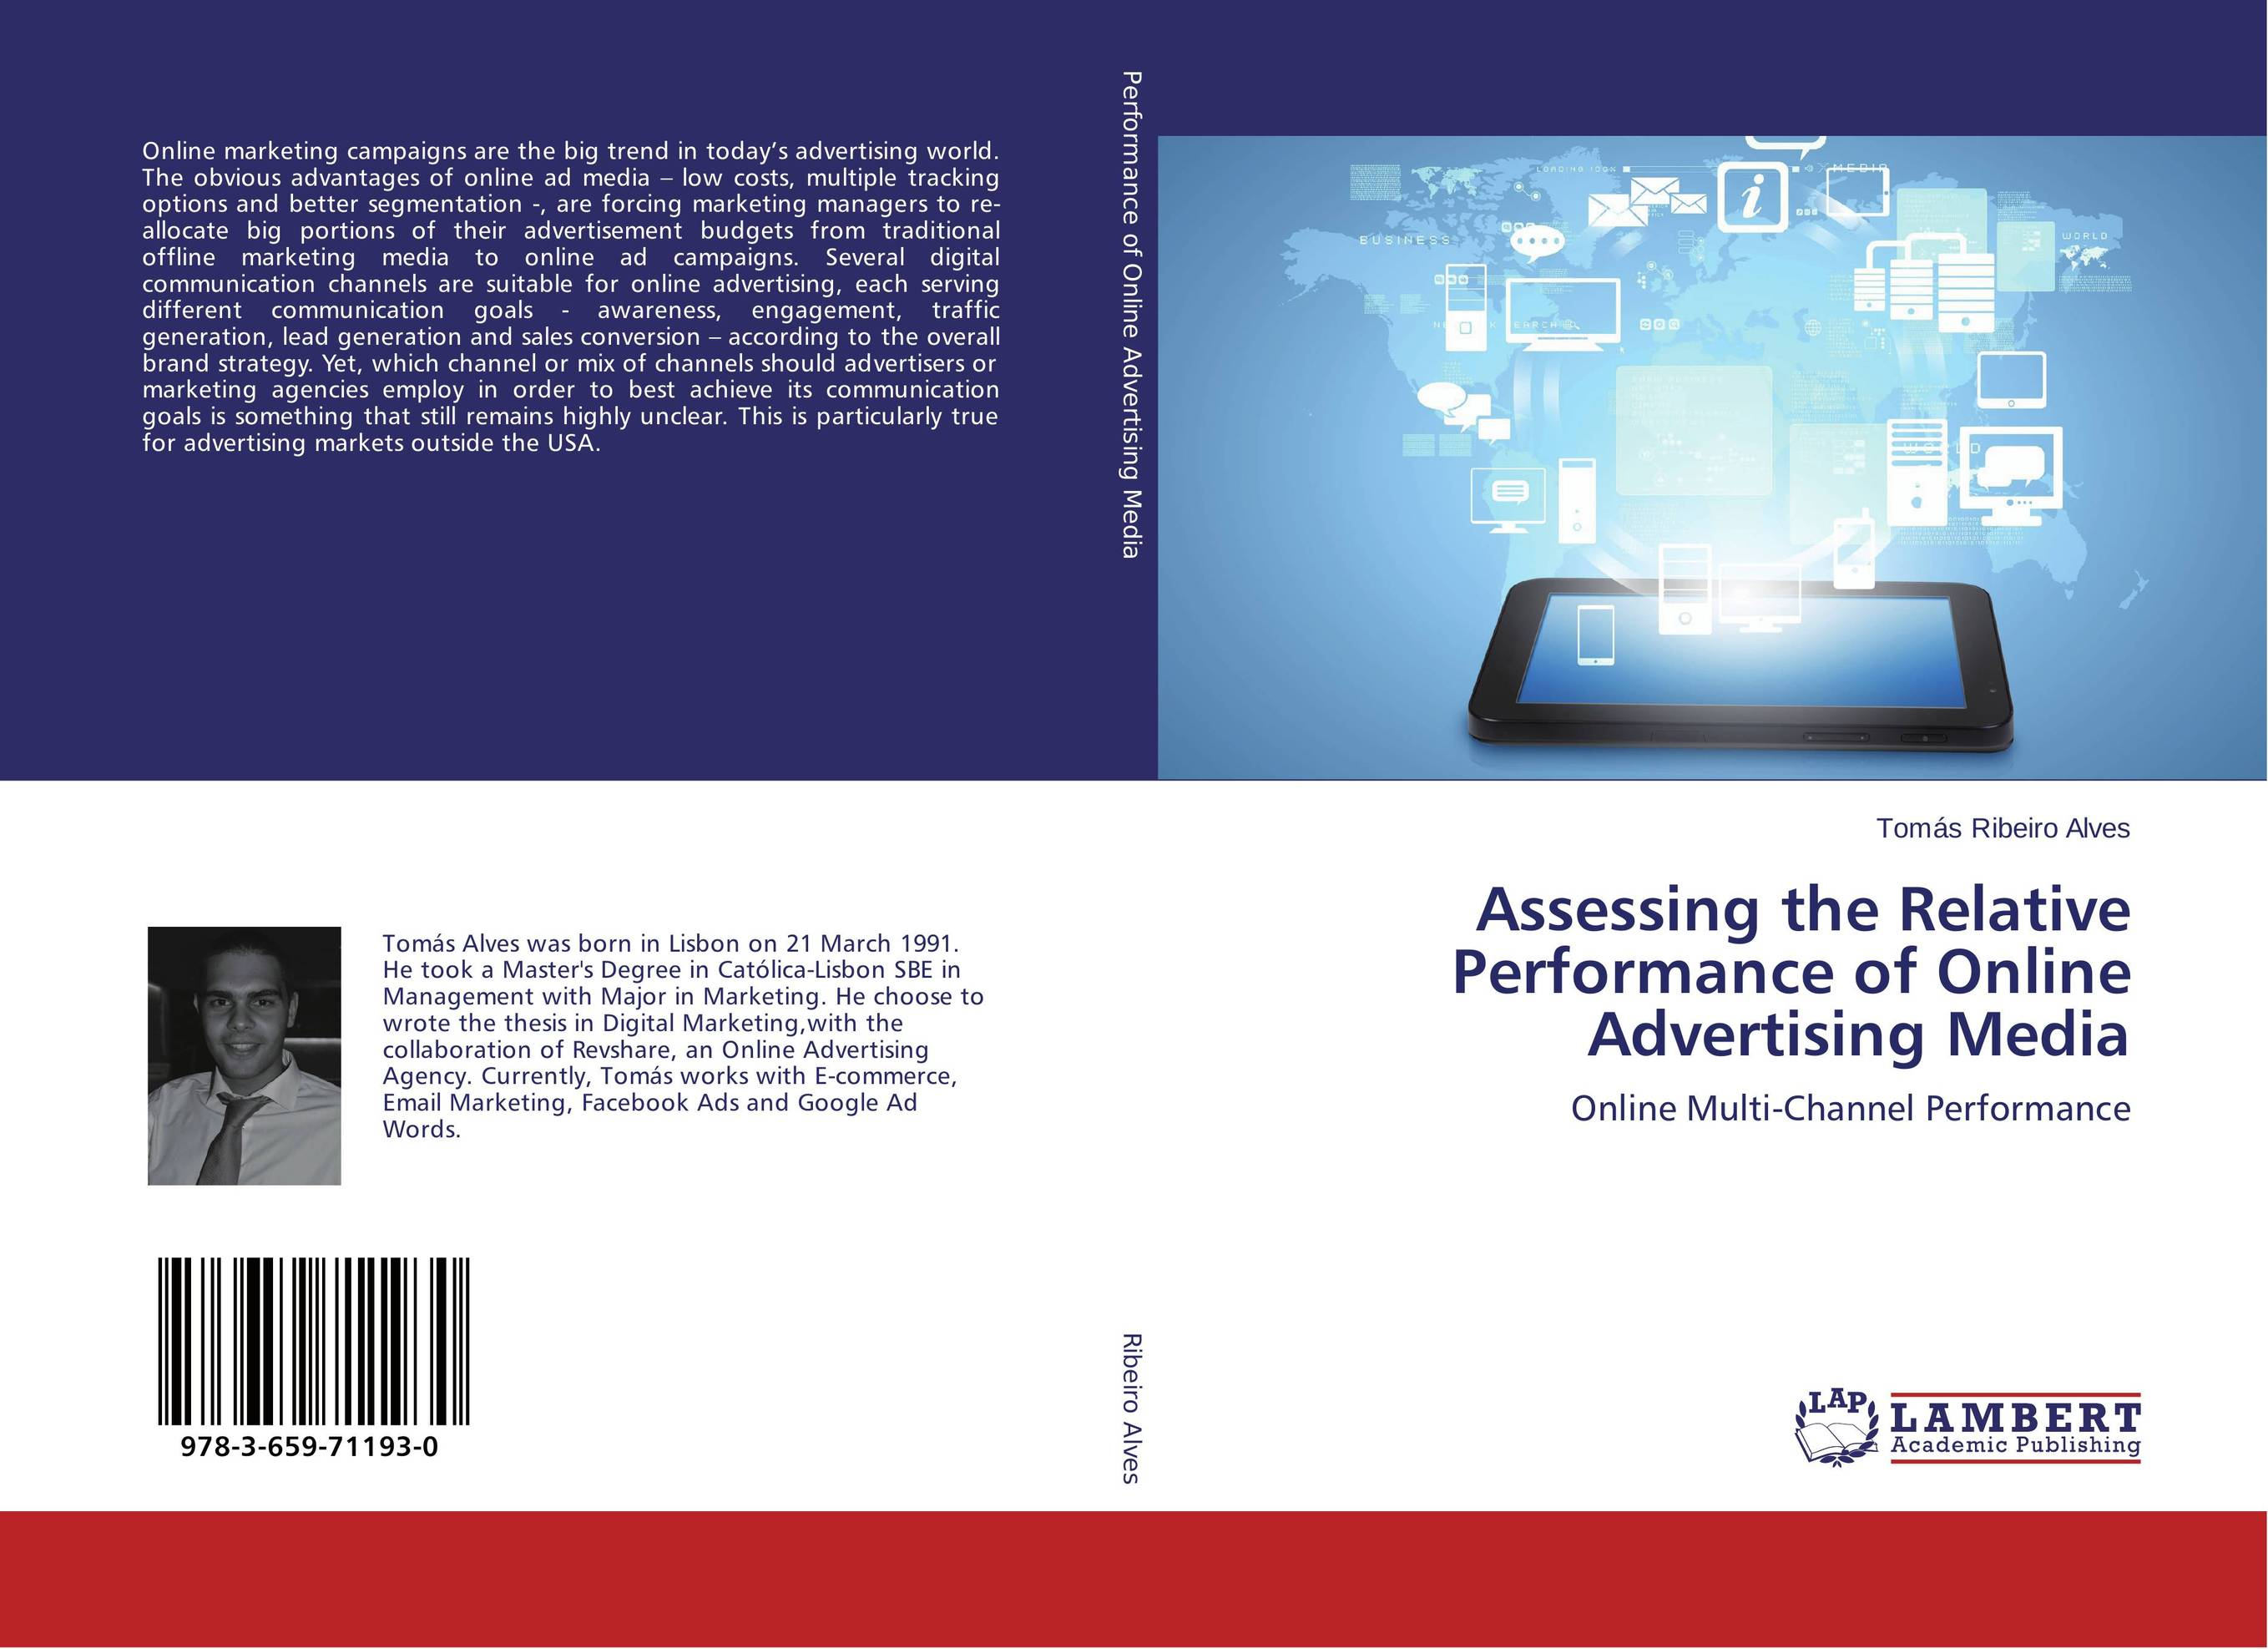 Assessing the Relative Performance of Online Advertising Media